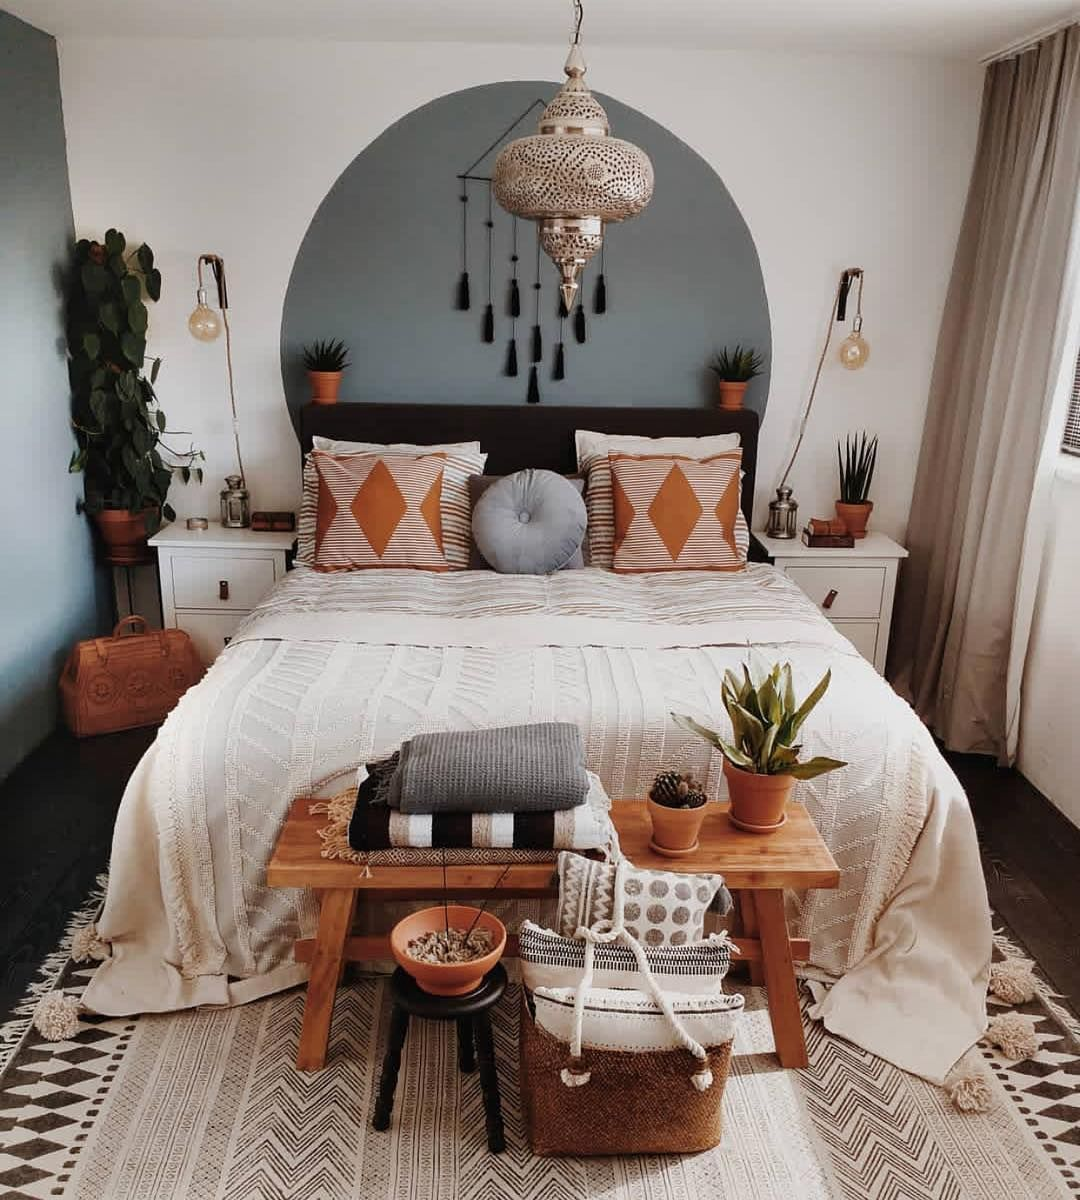 We Re Pretty Sure You Ll Fall In Love With Tatjanas World S Bedroom Too Just Look At All The Details Here Aesthetics Of It